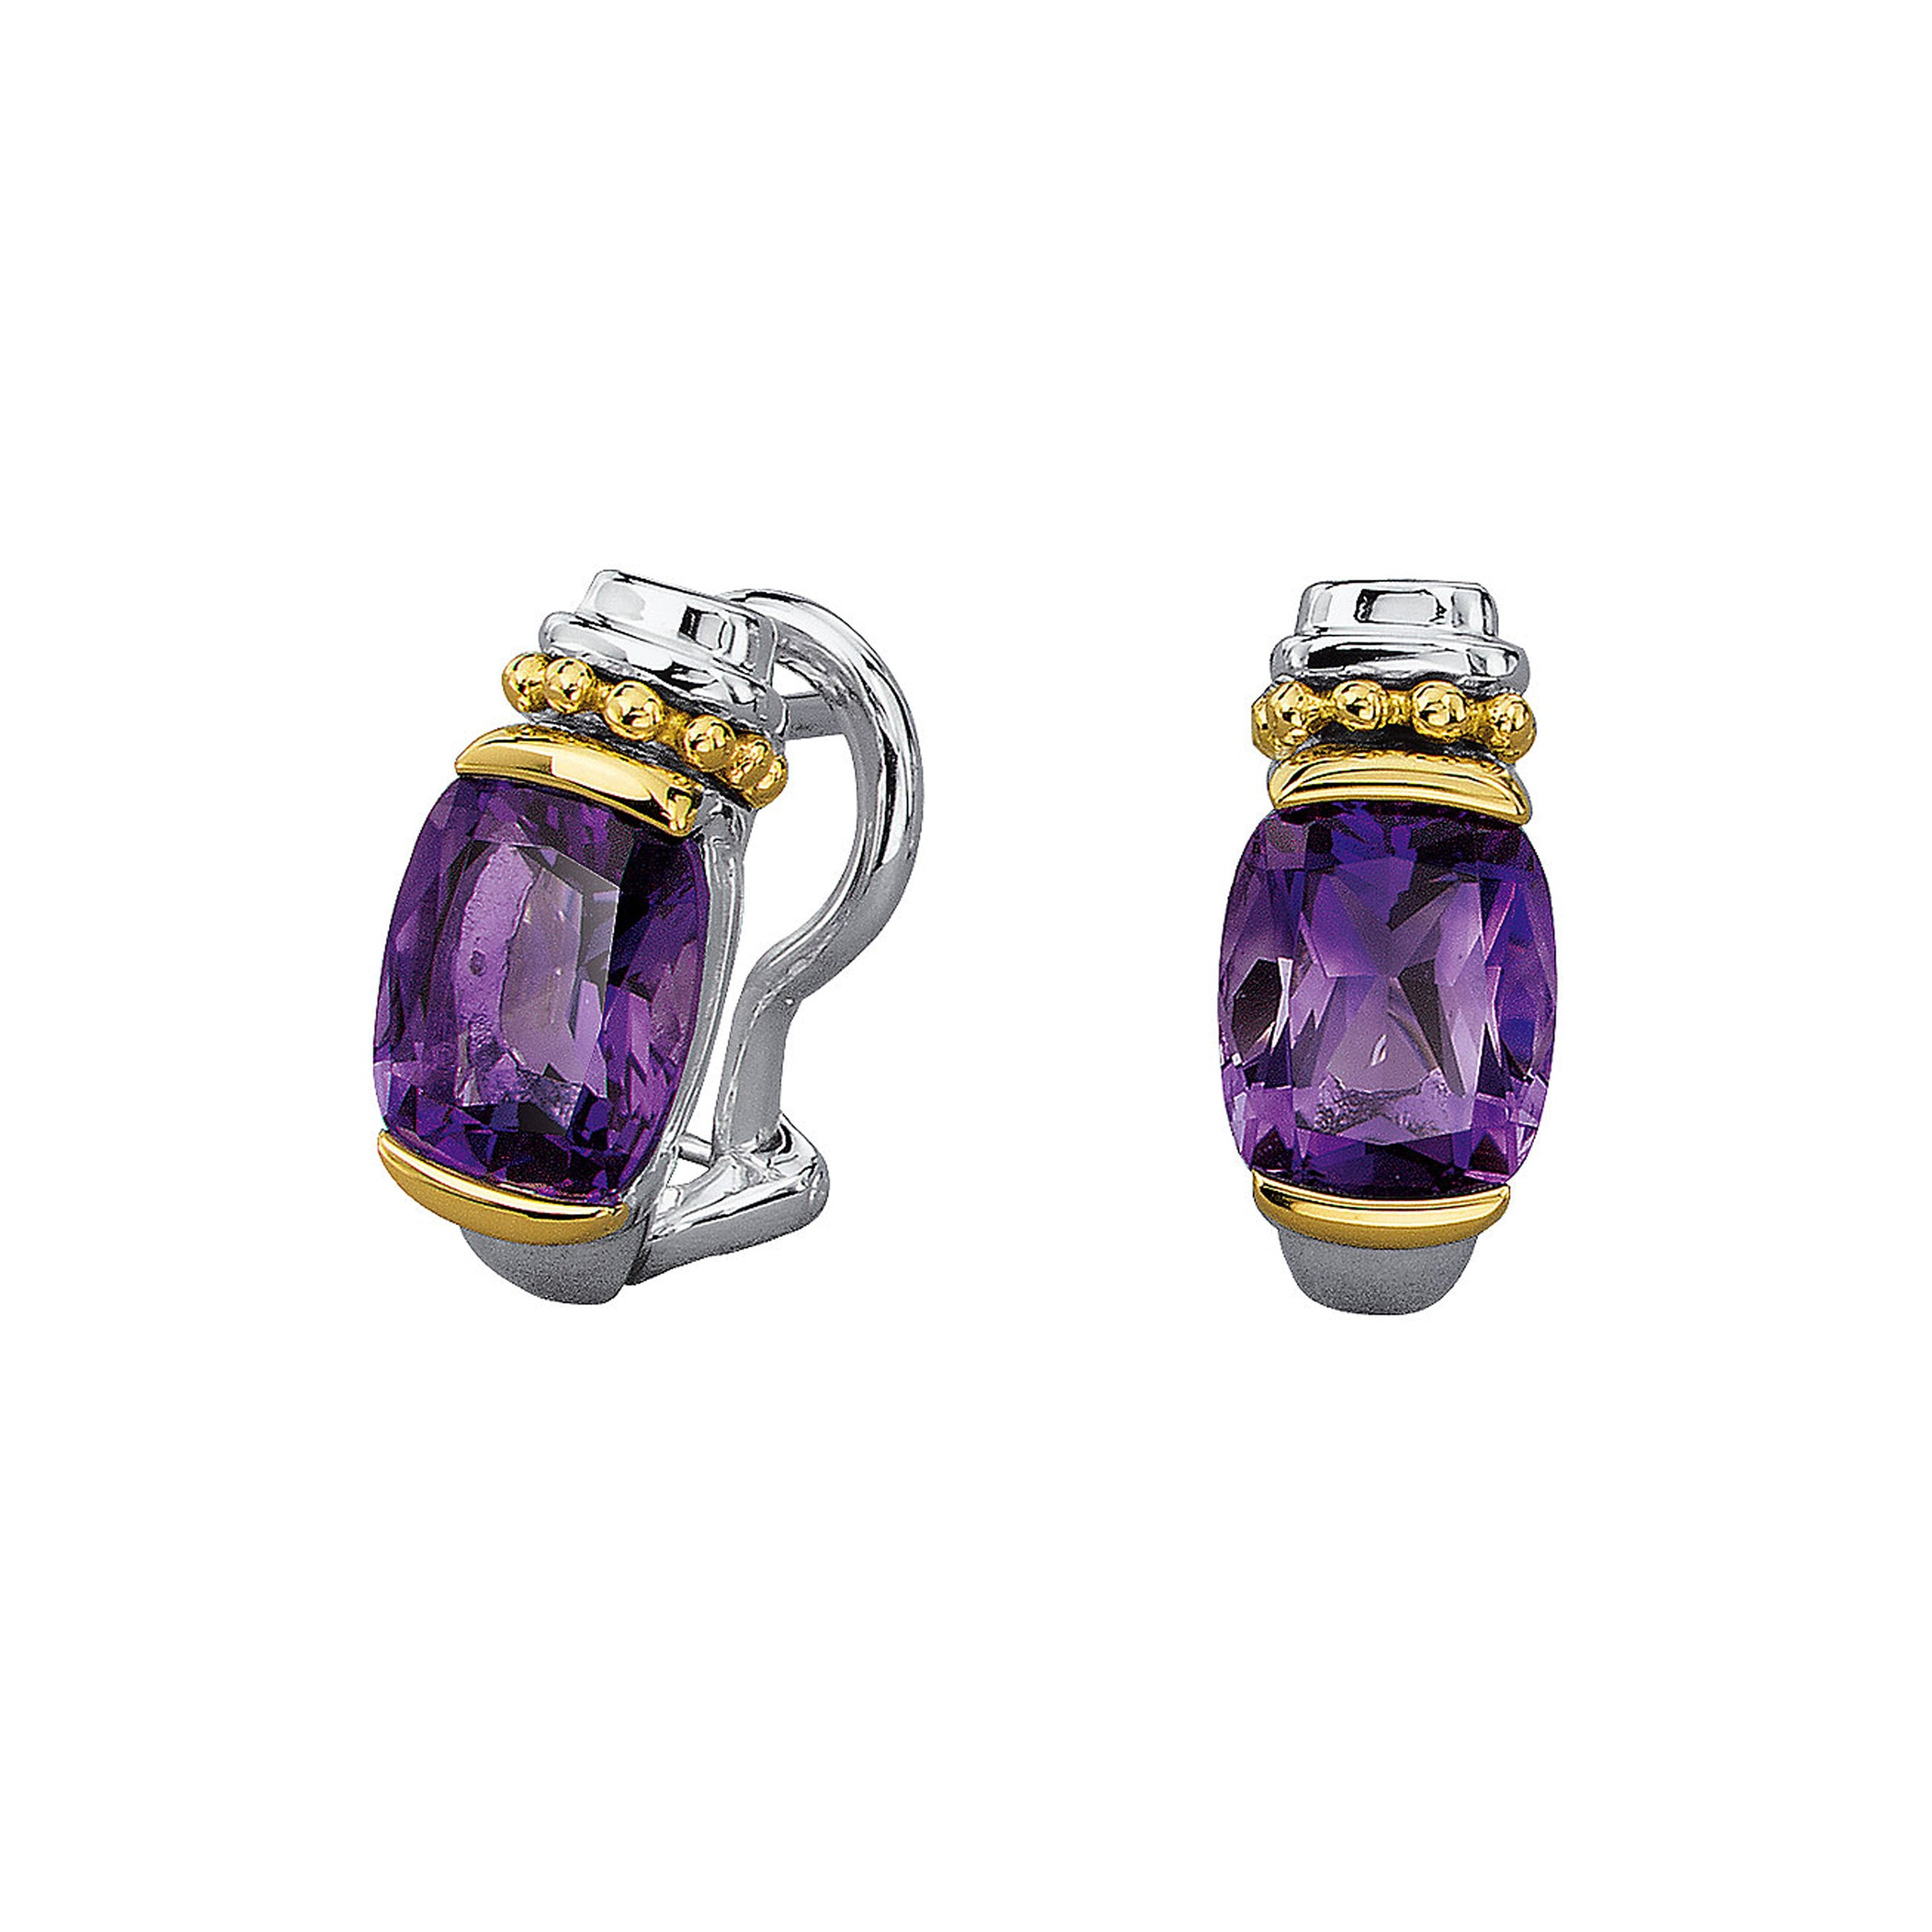 Amethyst Earring with Beaded Detail, Sterling Silver, 18K